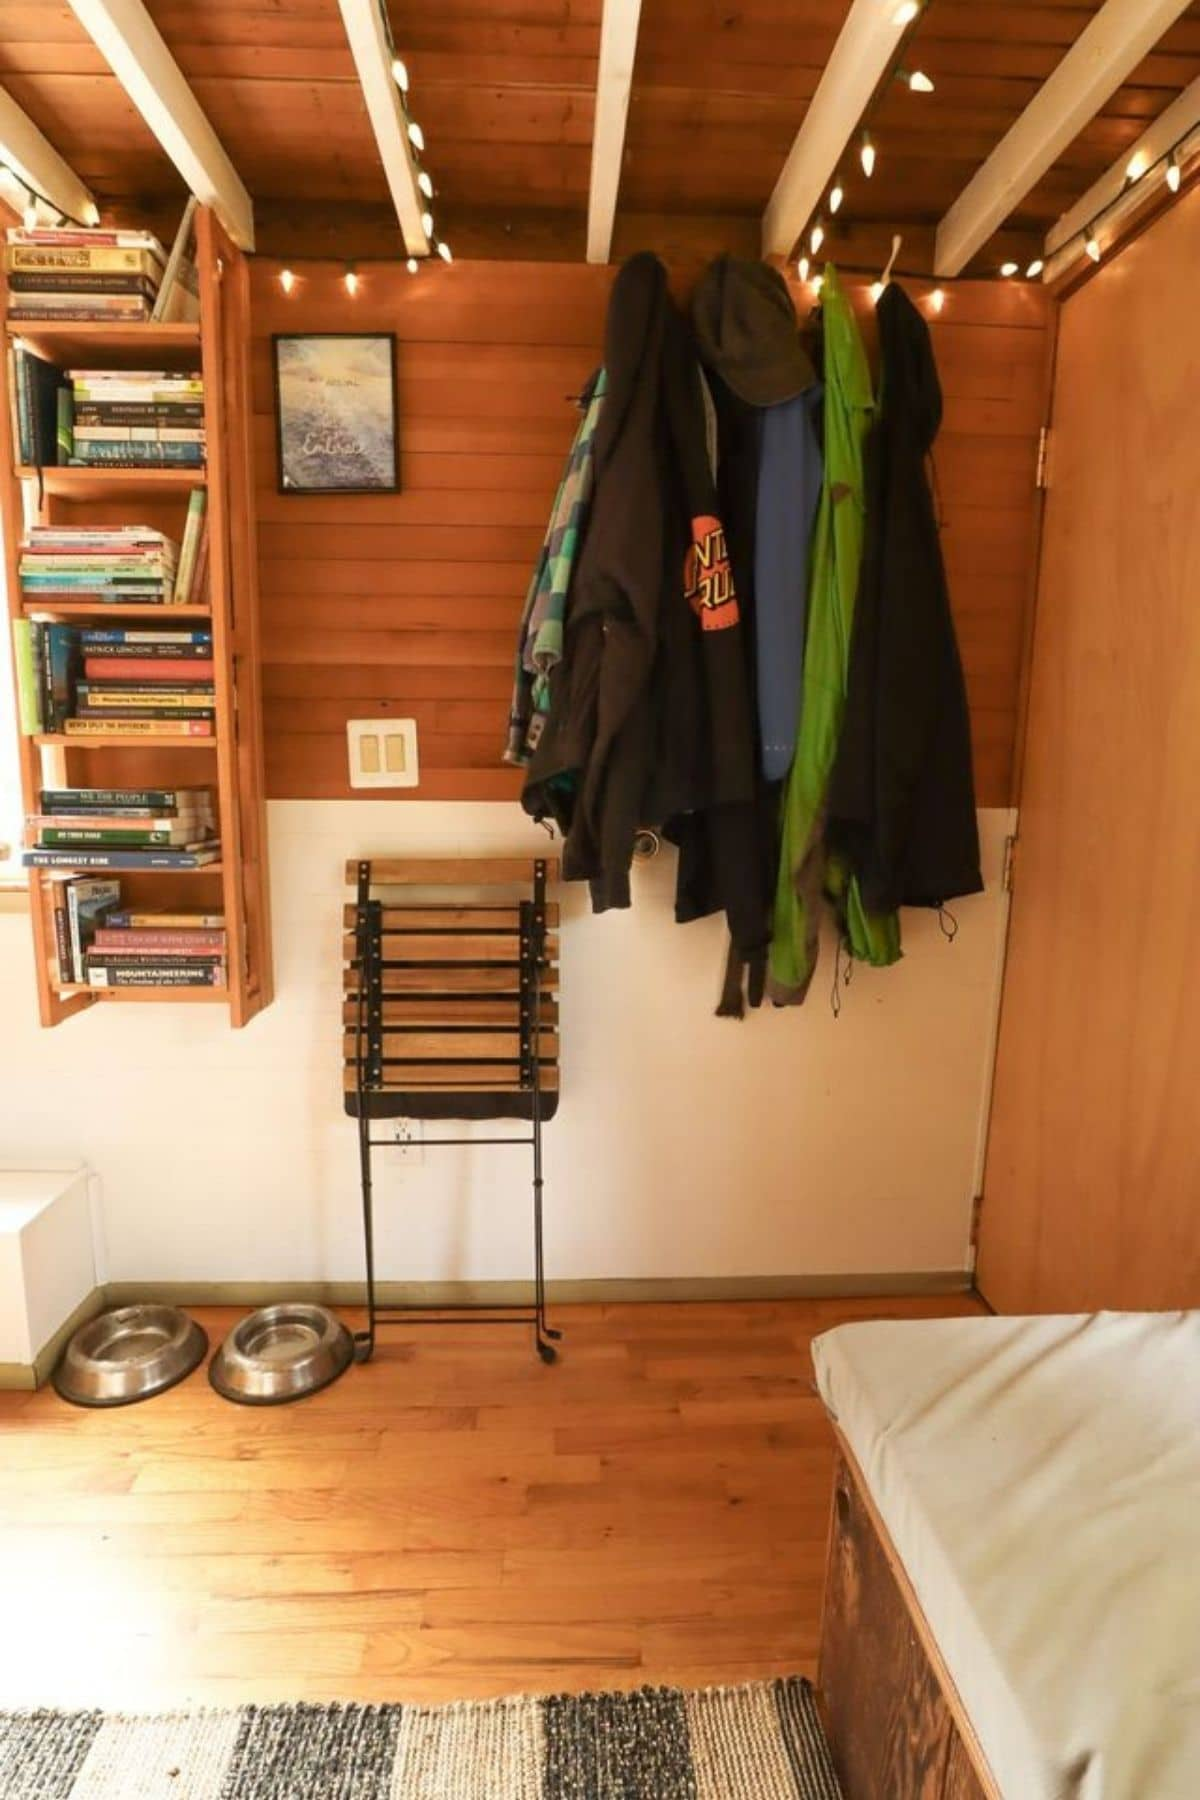 Tiny home entry with jackets on hook and hanging storage shelf